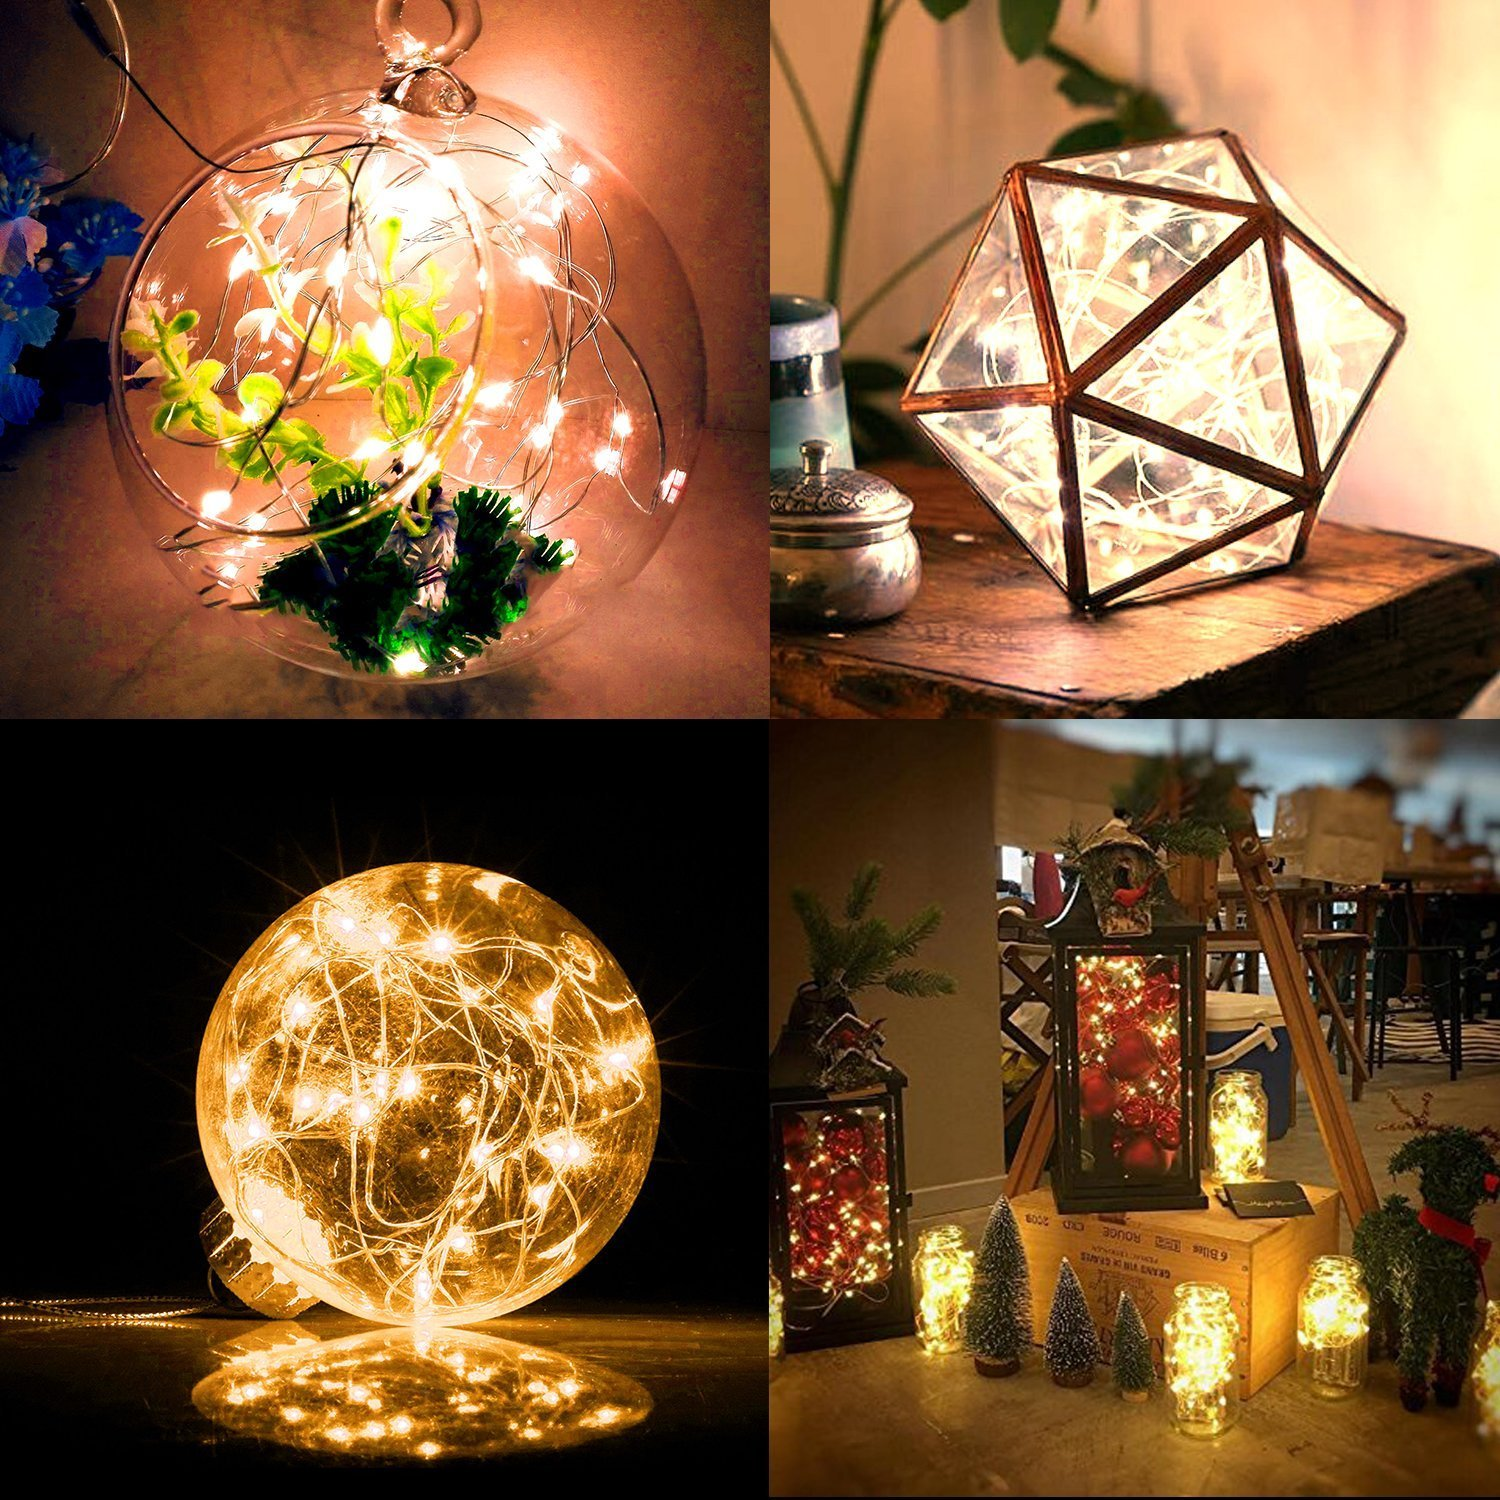 LENPOW 2 Pack Led Starry Fairy String Lights Super Bright Firefly Rope Lamp Twinkle Lantern 16.4ft 50 Led Waterproof 8 Modes Remote Control for Room Wedding Festival Decor Battery Operated Cool White